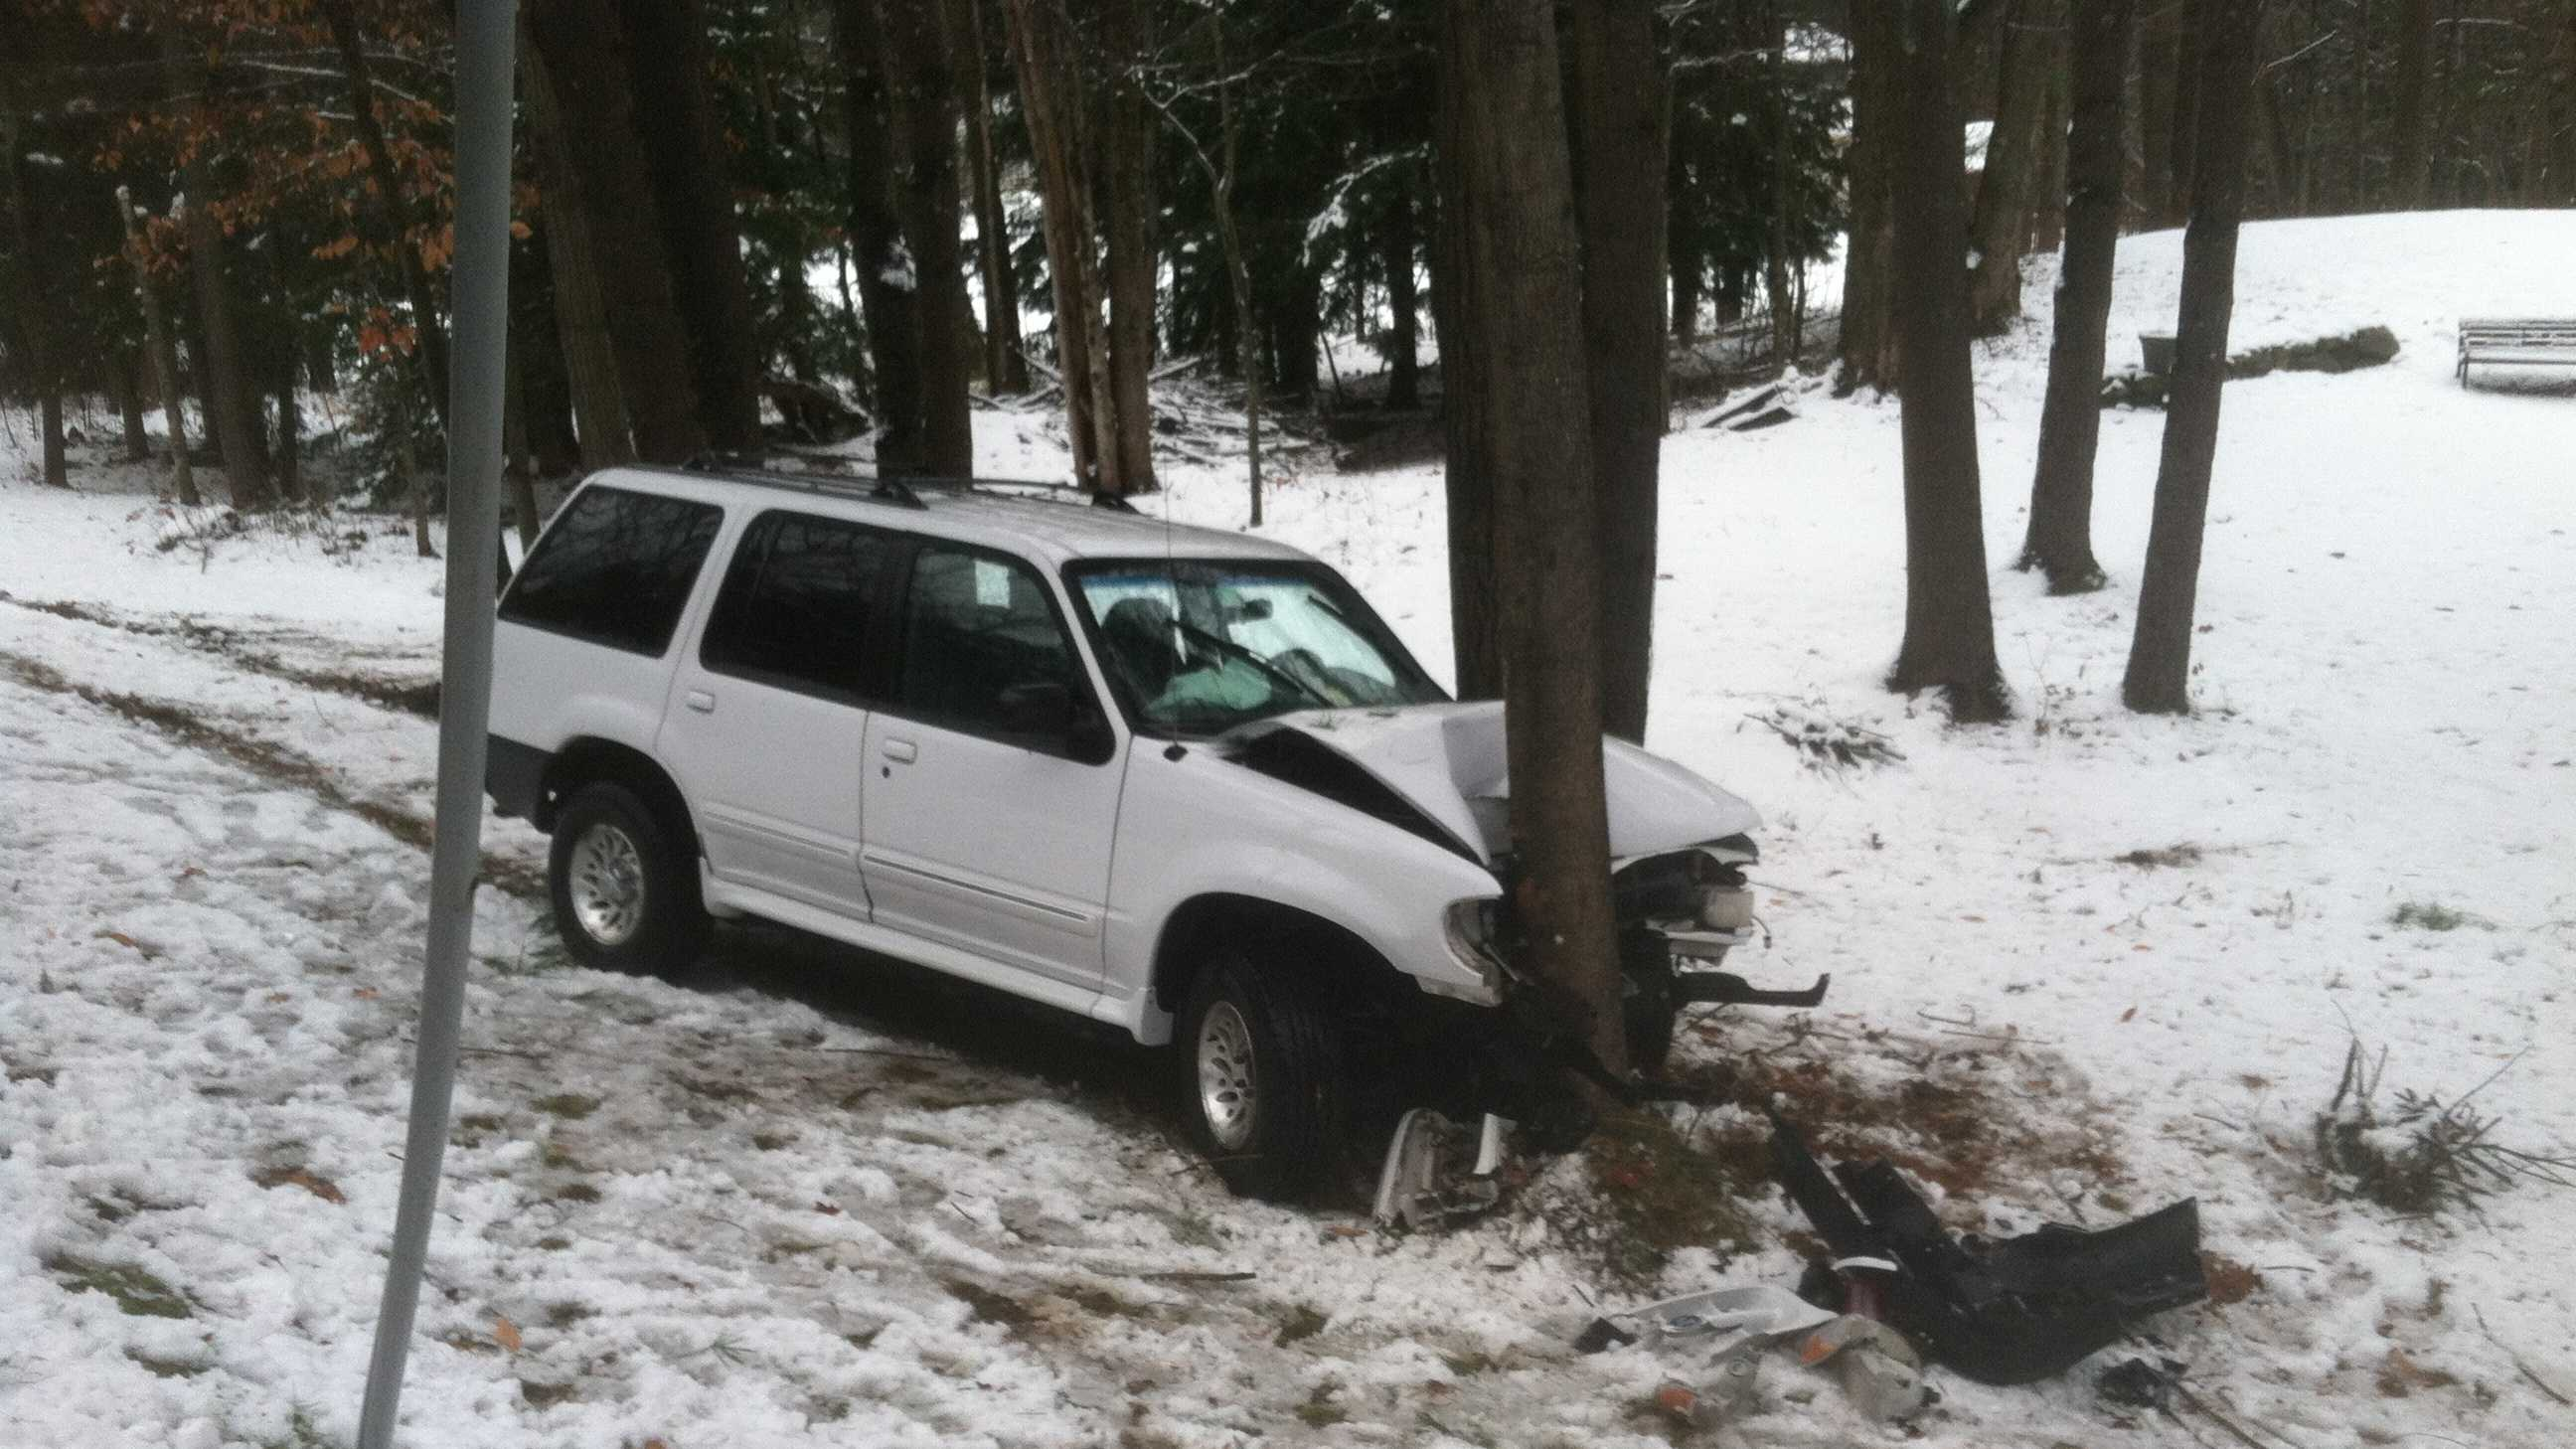 Westbrook Police say the vehicle occurred around 7:30 this morning at 1032 Methodist Road. The vehicle was traveling too fast for the conditions from the morning's Nor'Easter, slid off the road and hit a tree.